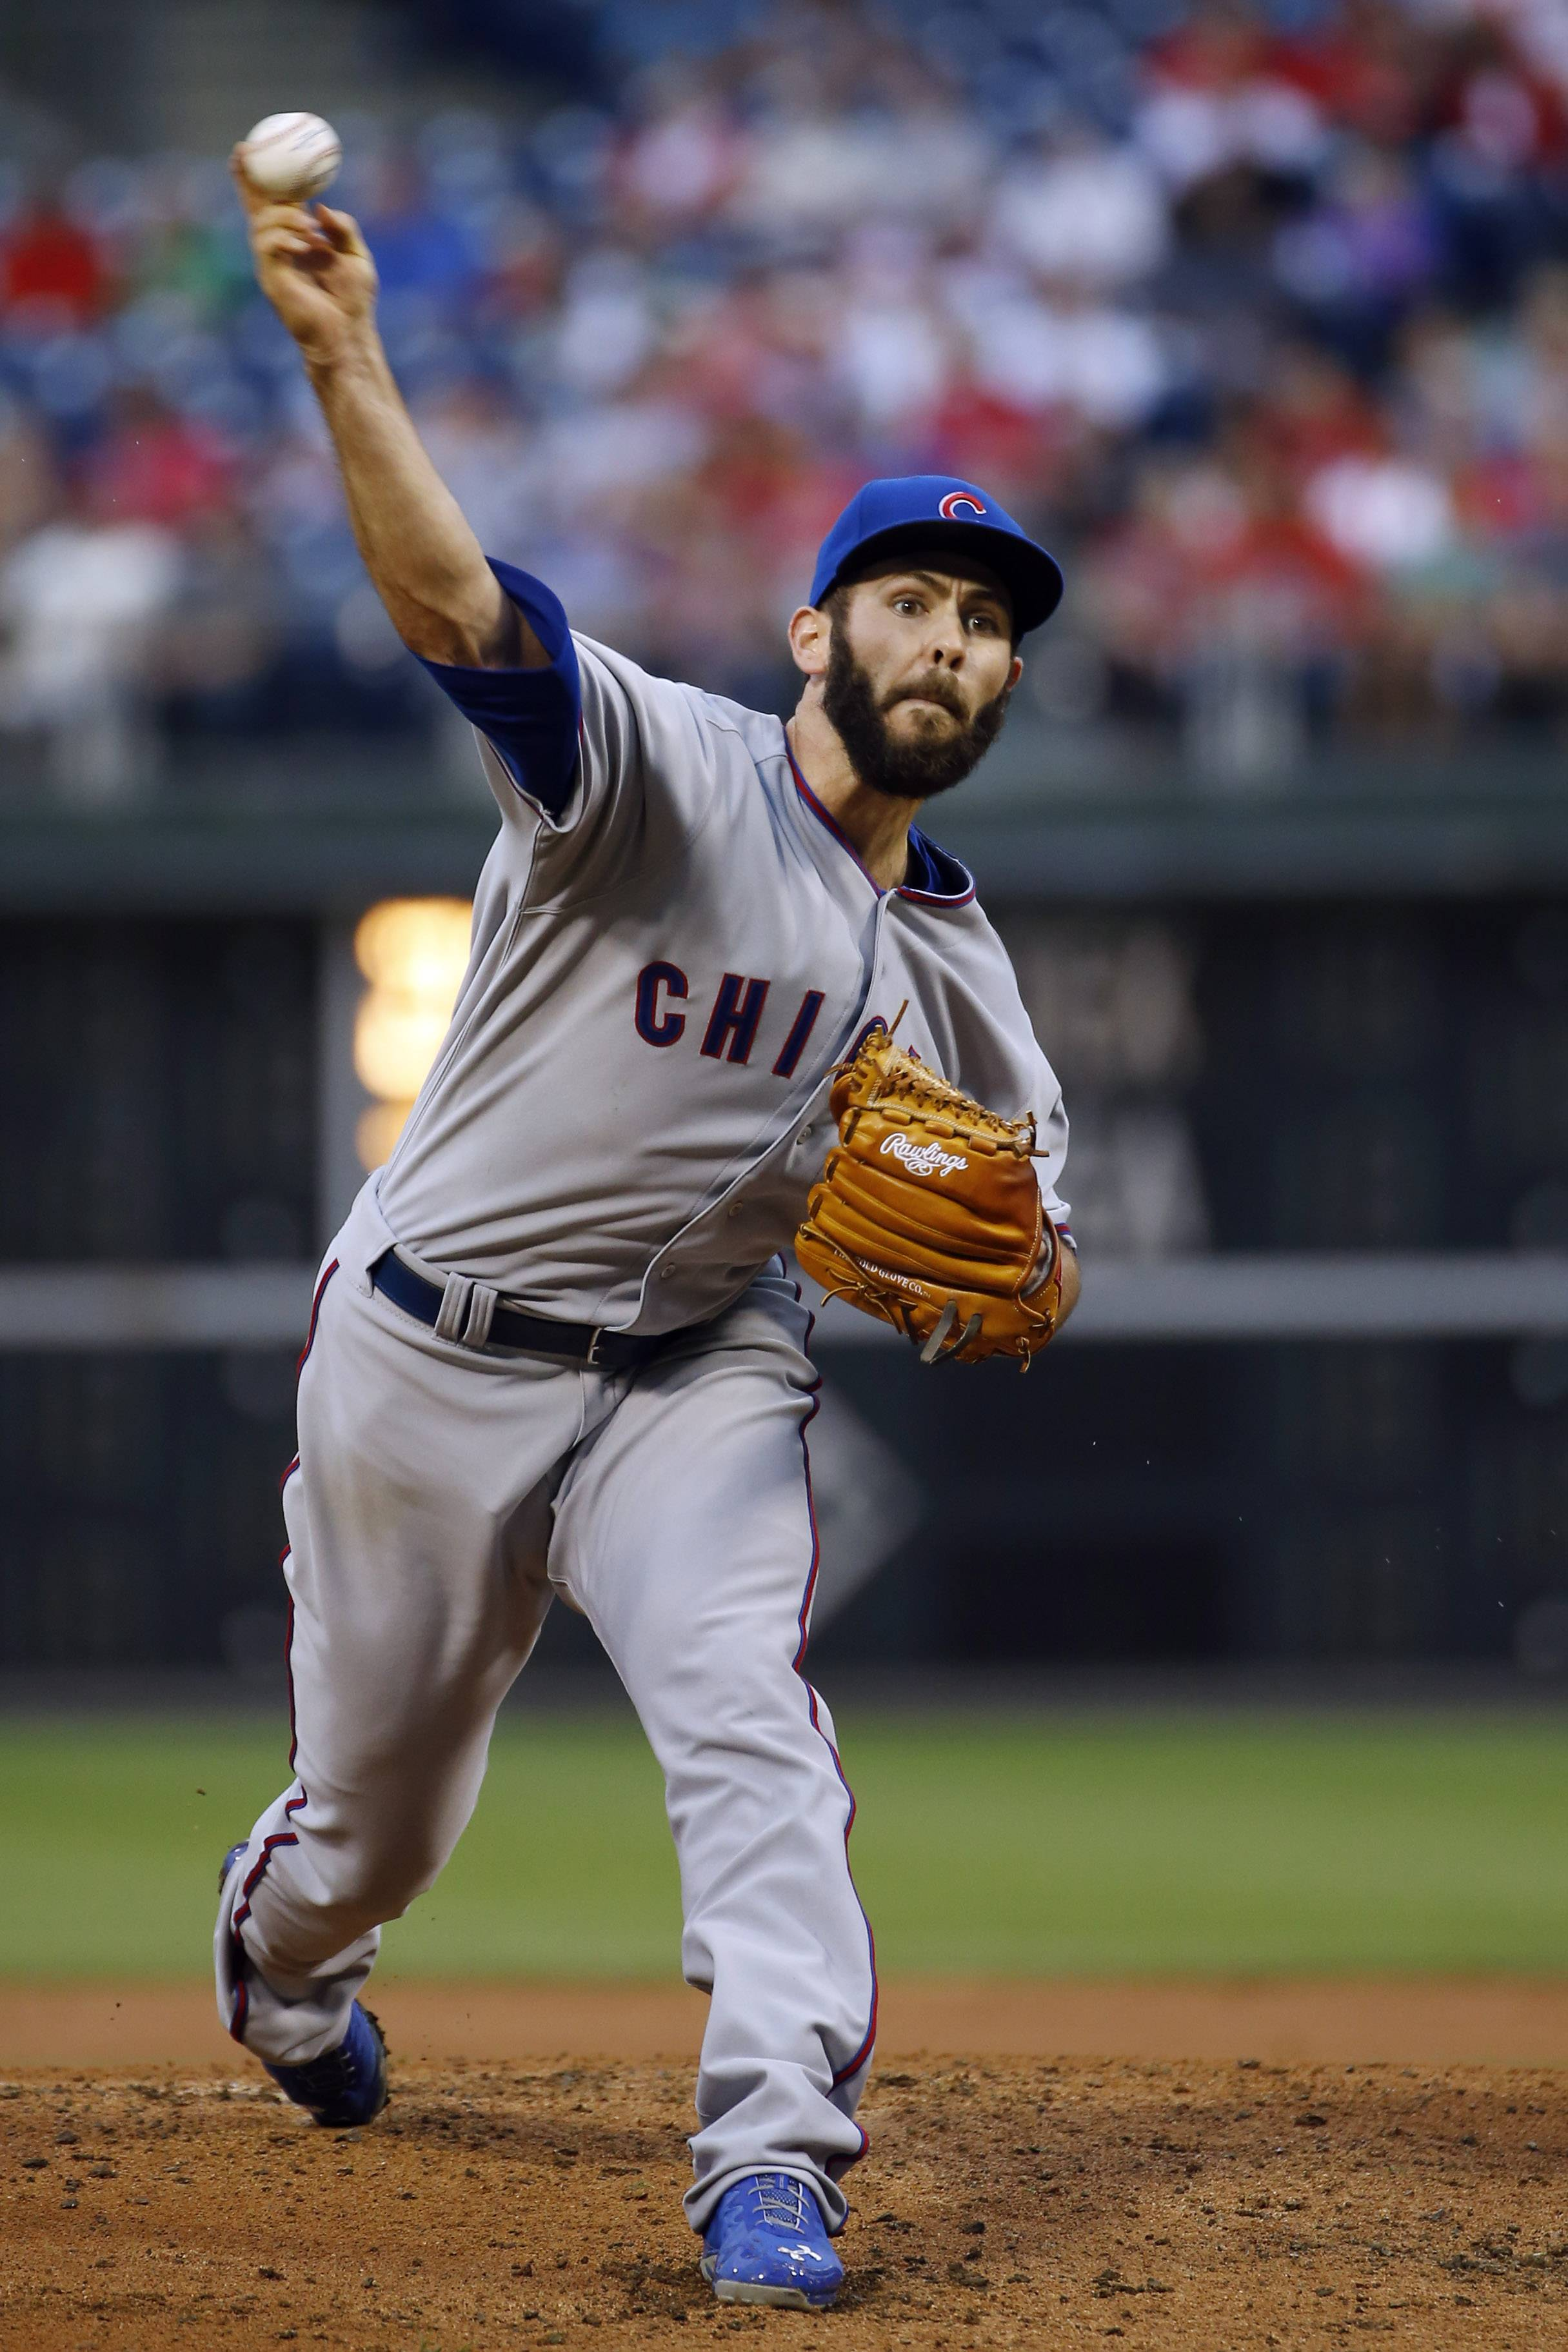 Jake Arrieta threw seven impressive innings, Starlin Castro hit a two-run homer and the Cubs beat the Philadelphia Phillies 2-1 Friday night in matchup of last-place teams.